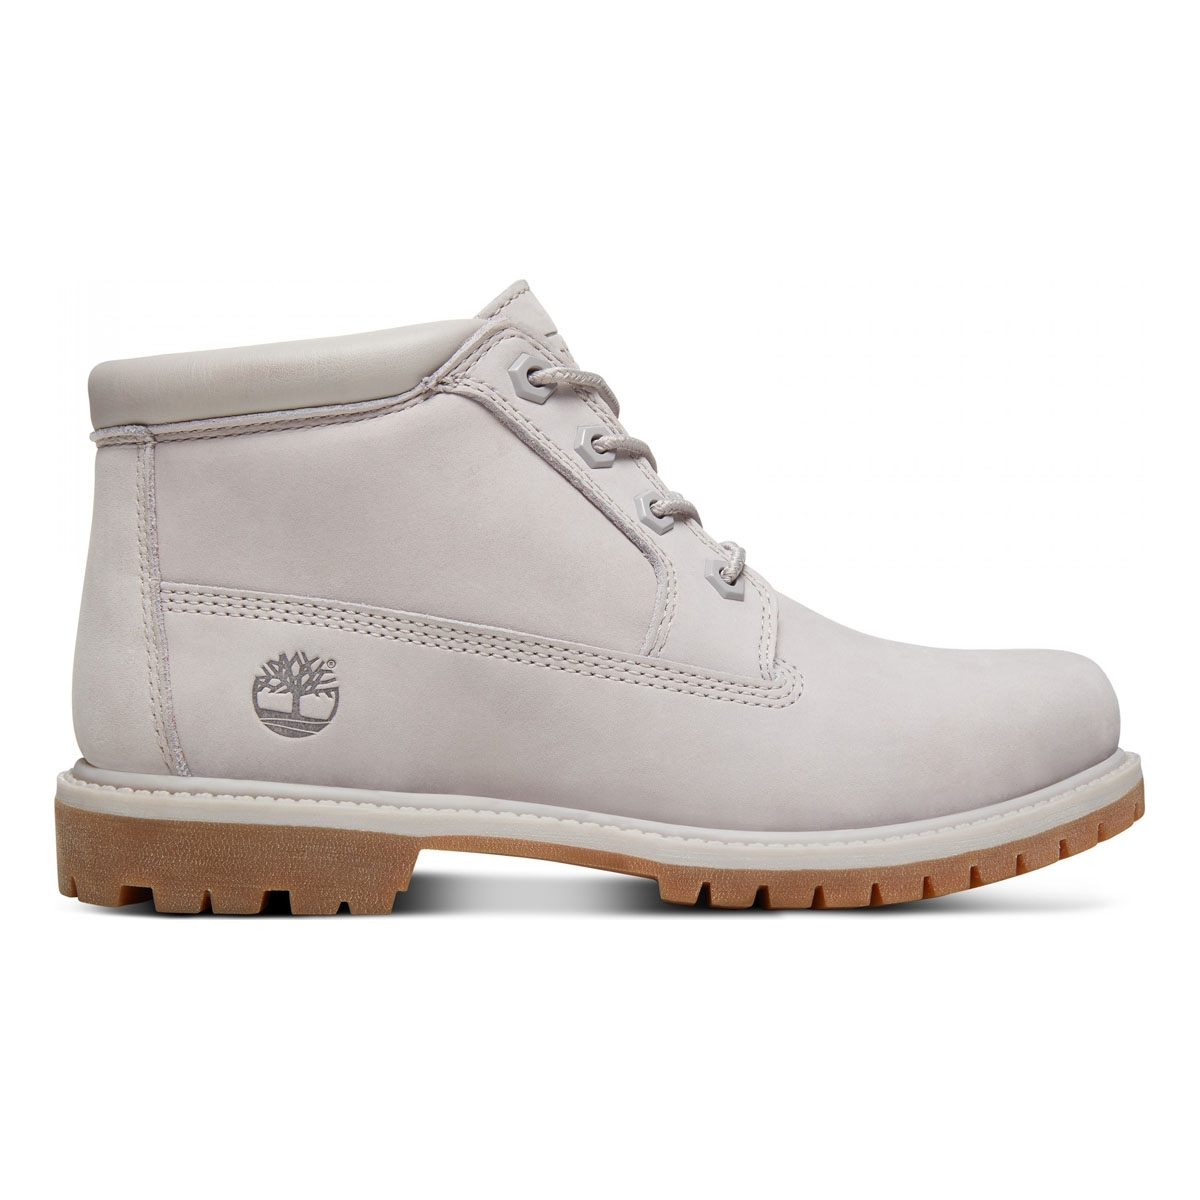 Image of Timberland Nellie Chukka Double WP Boots (Women s) - Light Grey  Nubuck 236e8d103